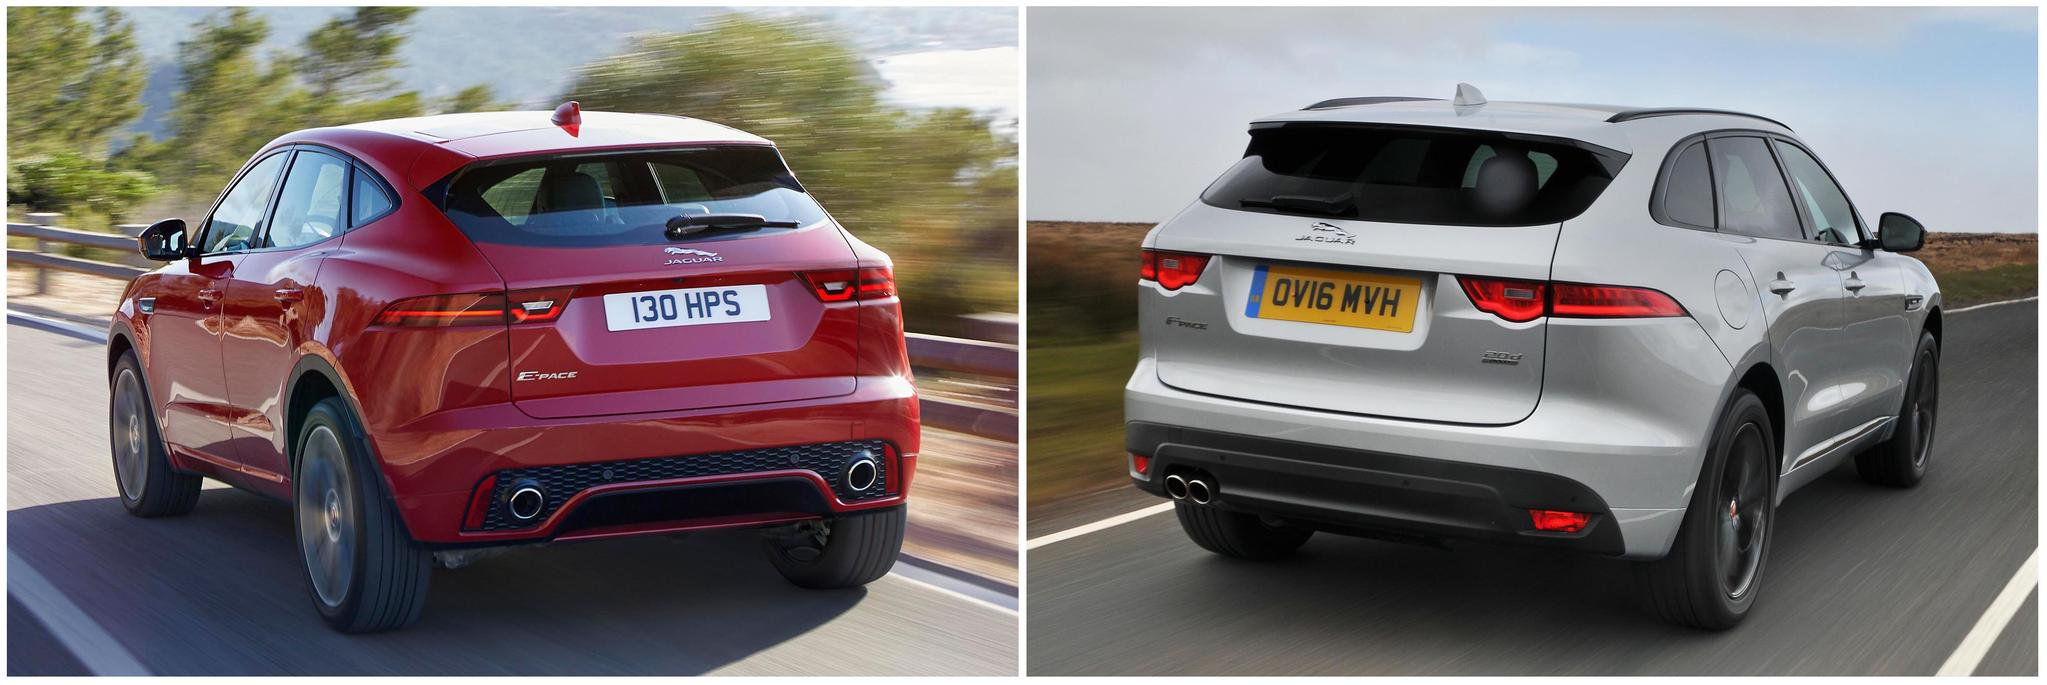 New Jaguar E-Pace vs Jaguar F-Pace